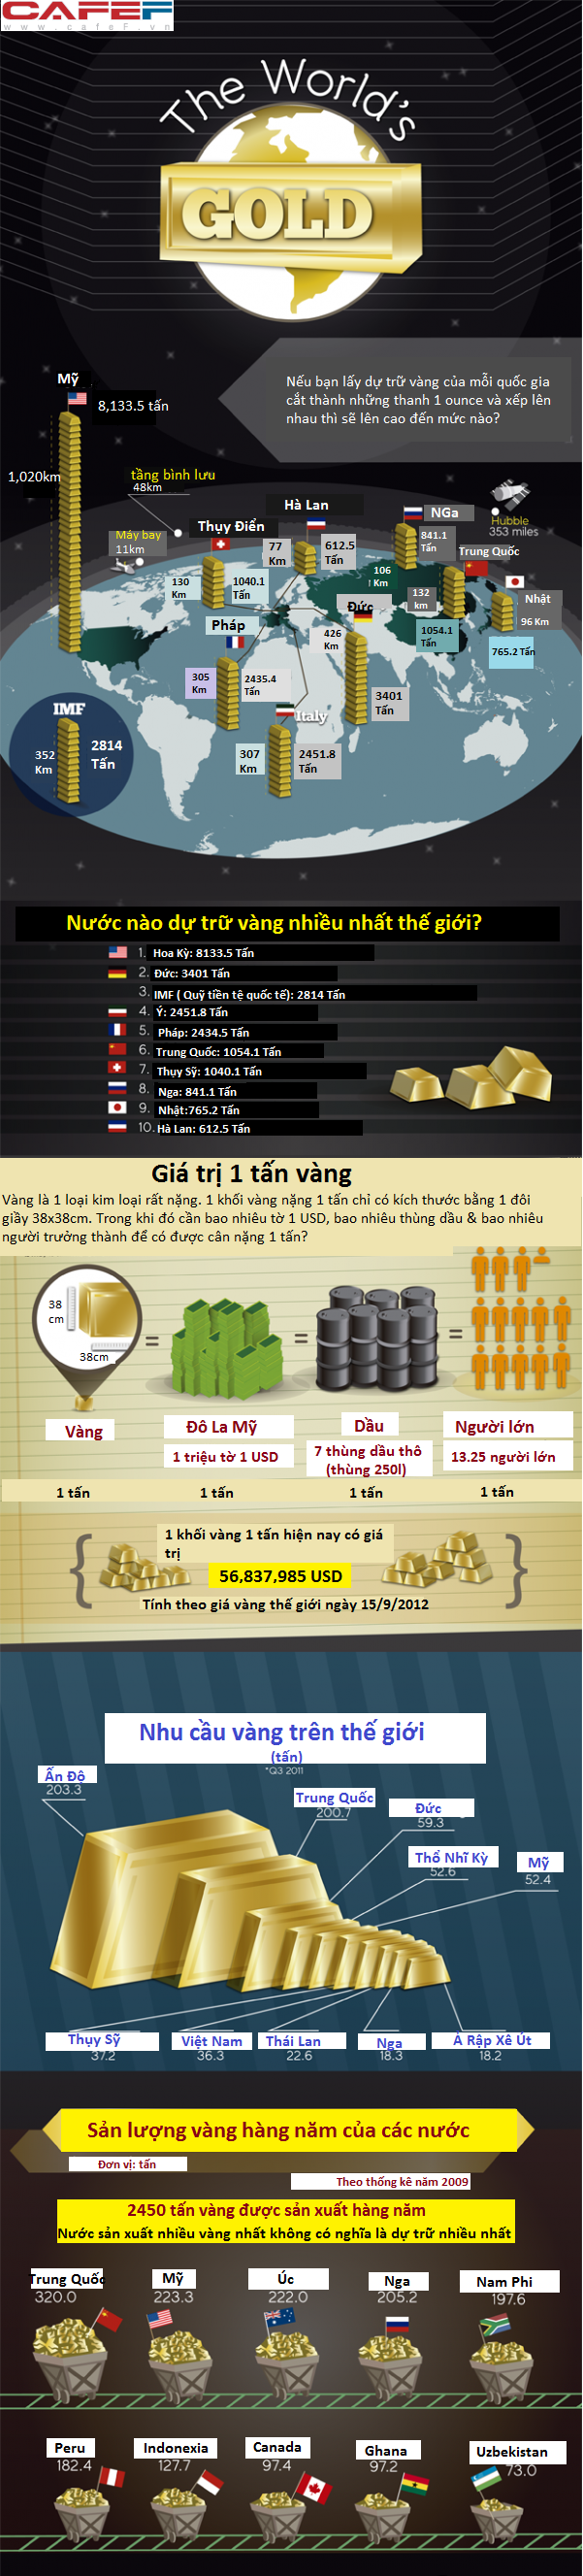 [Infographic] Cung cu vng th gii hin nay ra sao? (1)